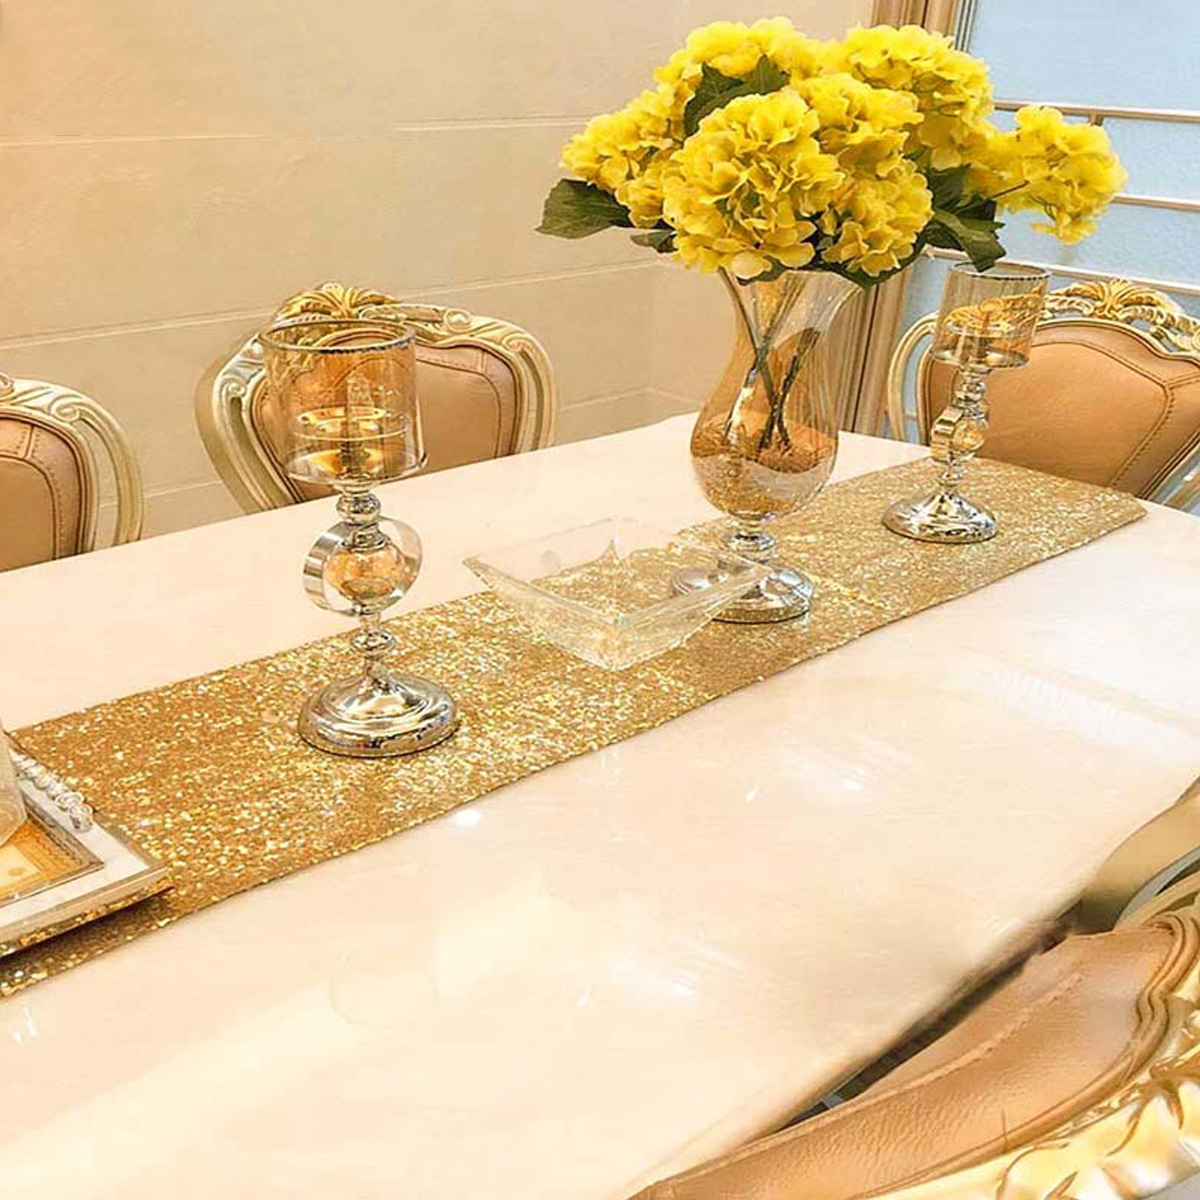 30X180cm Sequin Table Runner Shiny Gold Silver Colour Luxury Style Embroider Sequin Table Runner For Wedding Hotel Dinner Party